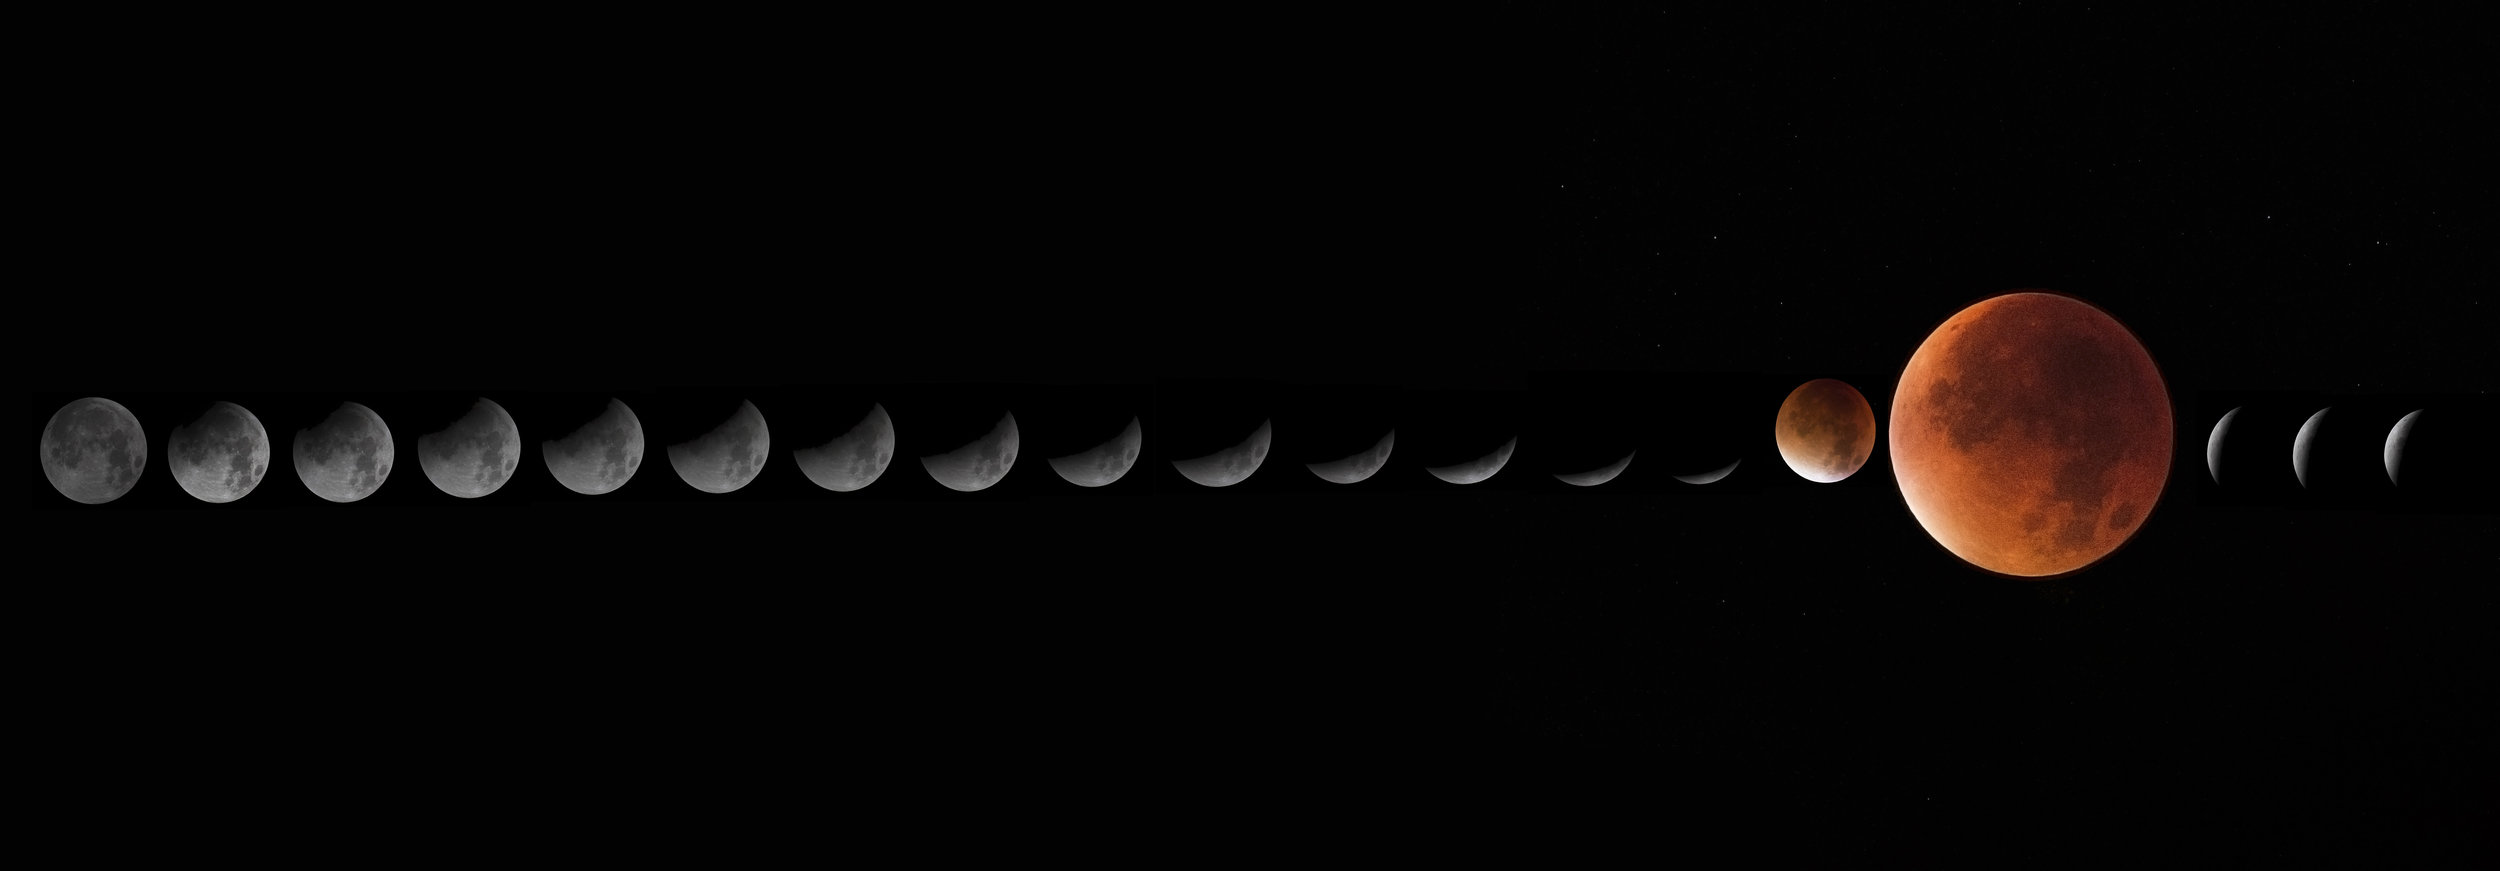 Lunar eclipse composite